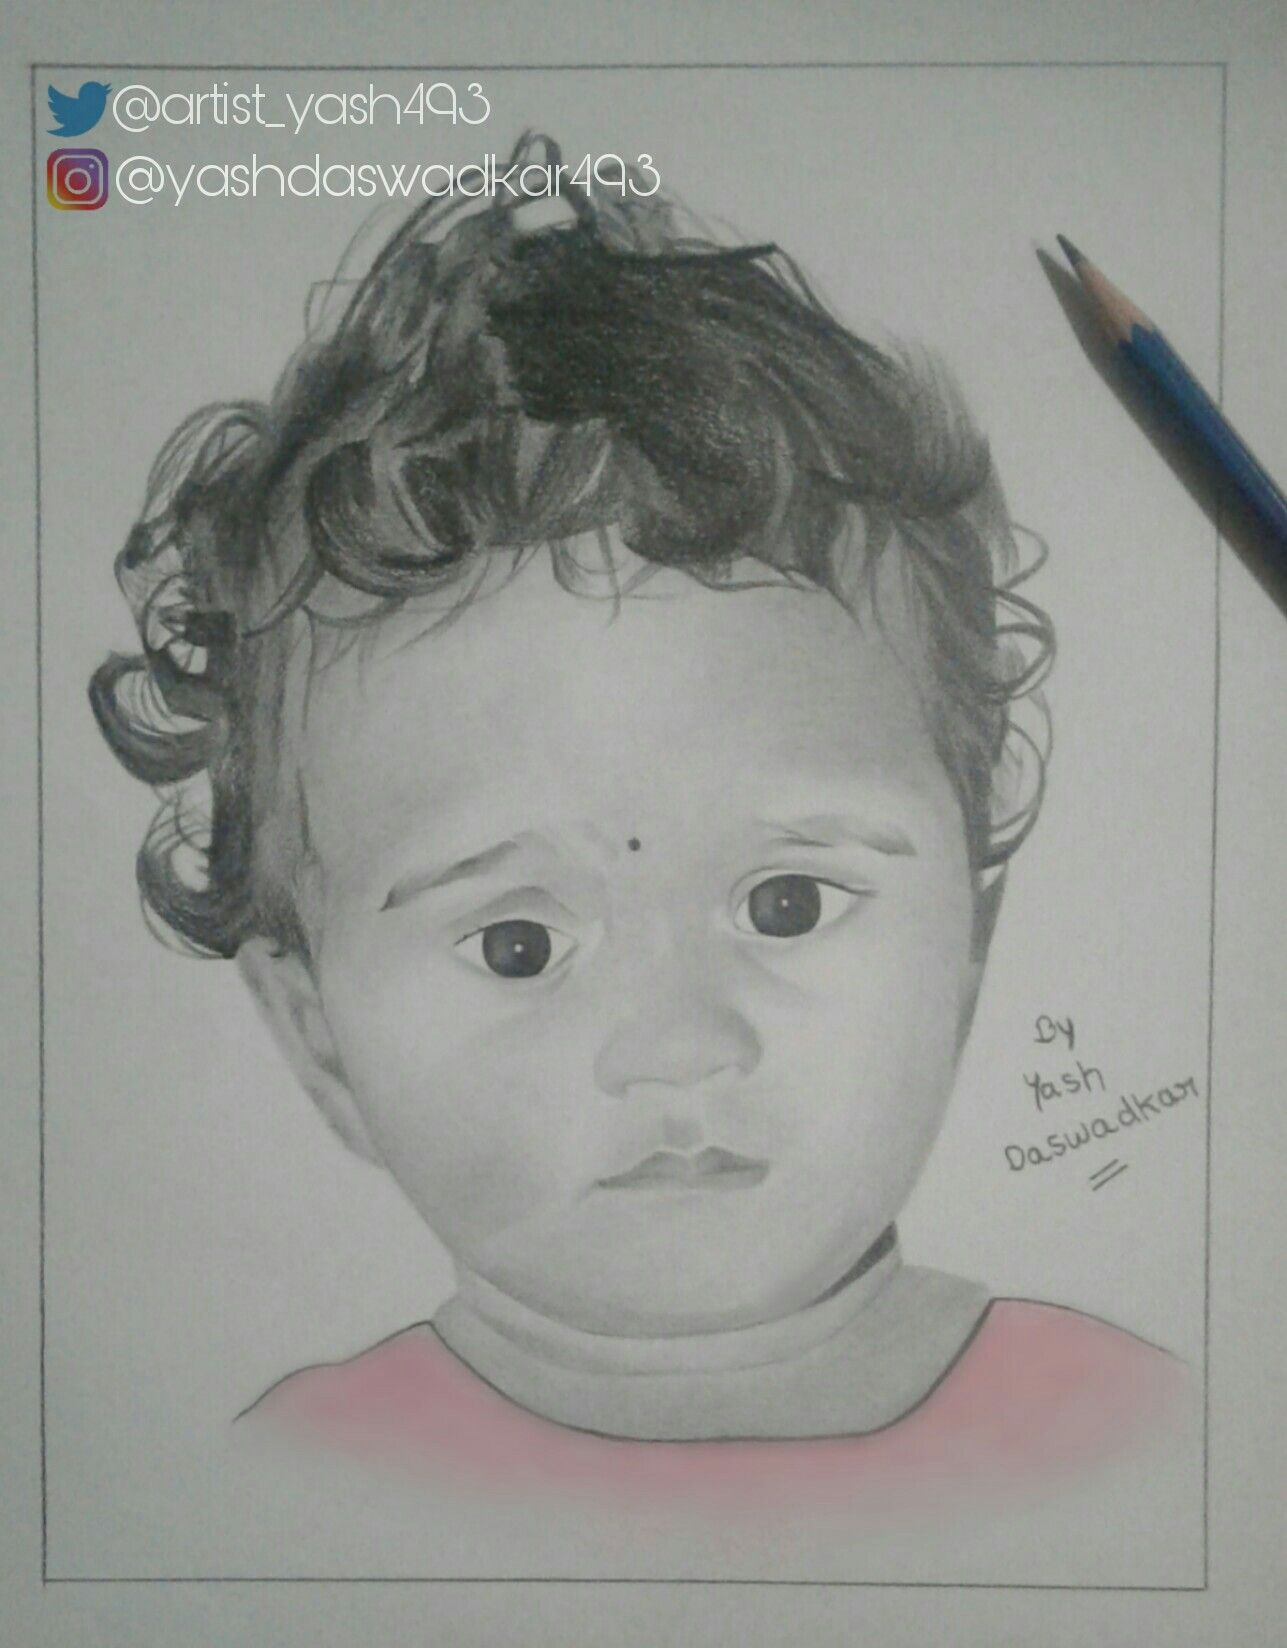 Sketch by yash daswadkar